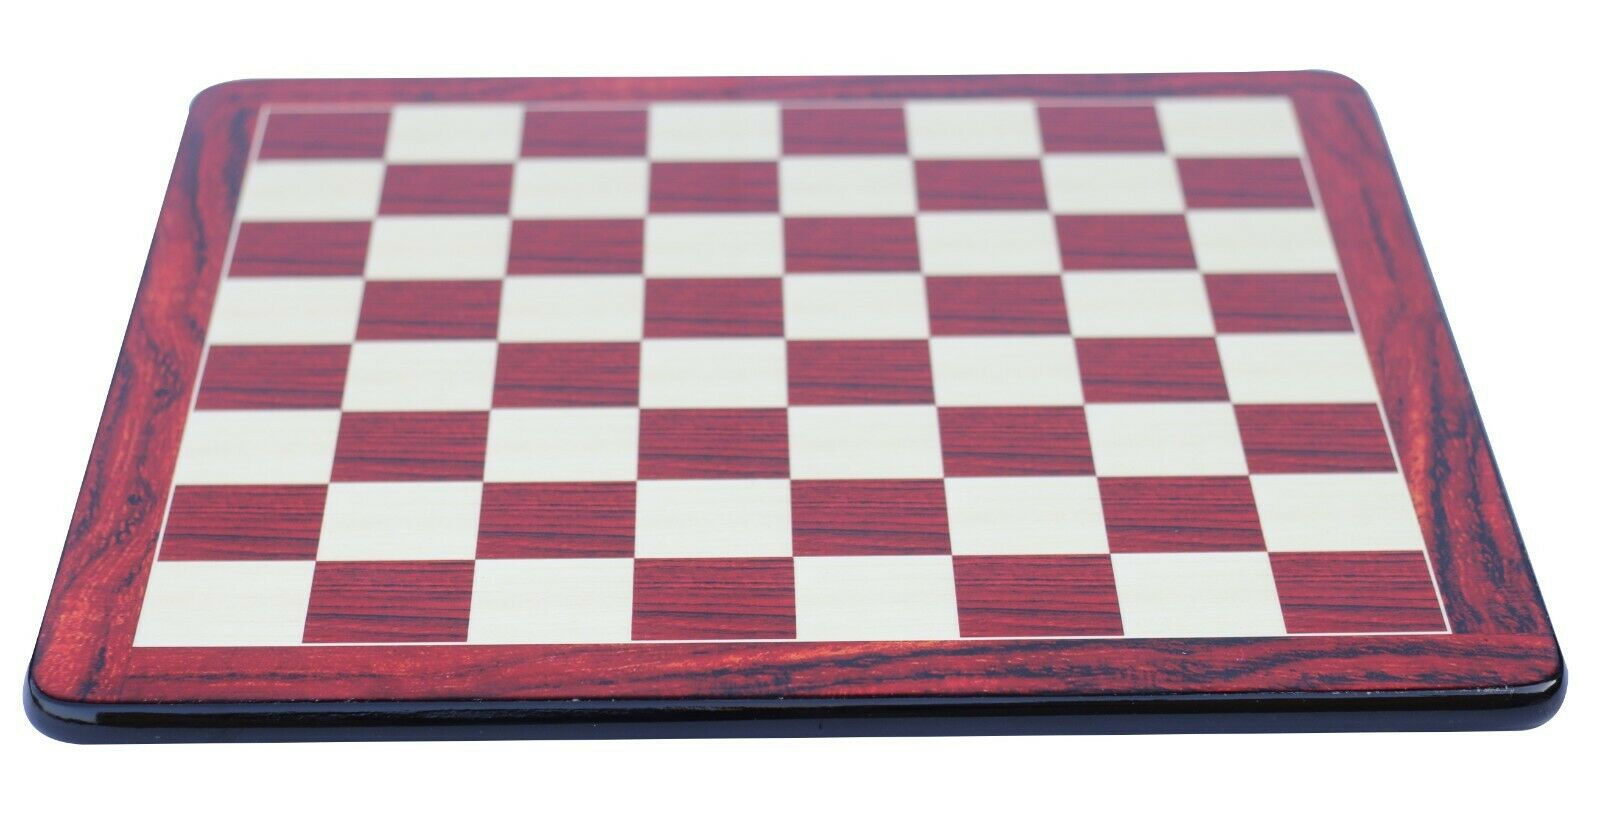 Chess Board with square size 2.5  X 2.25  in